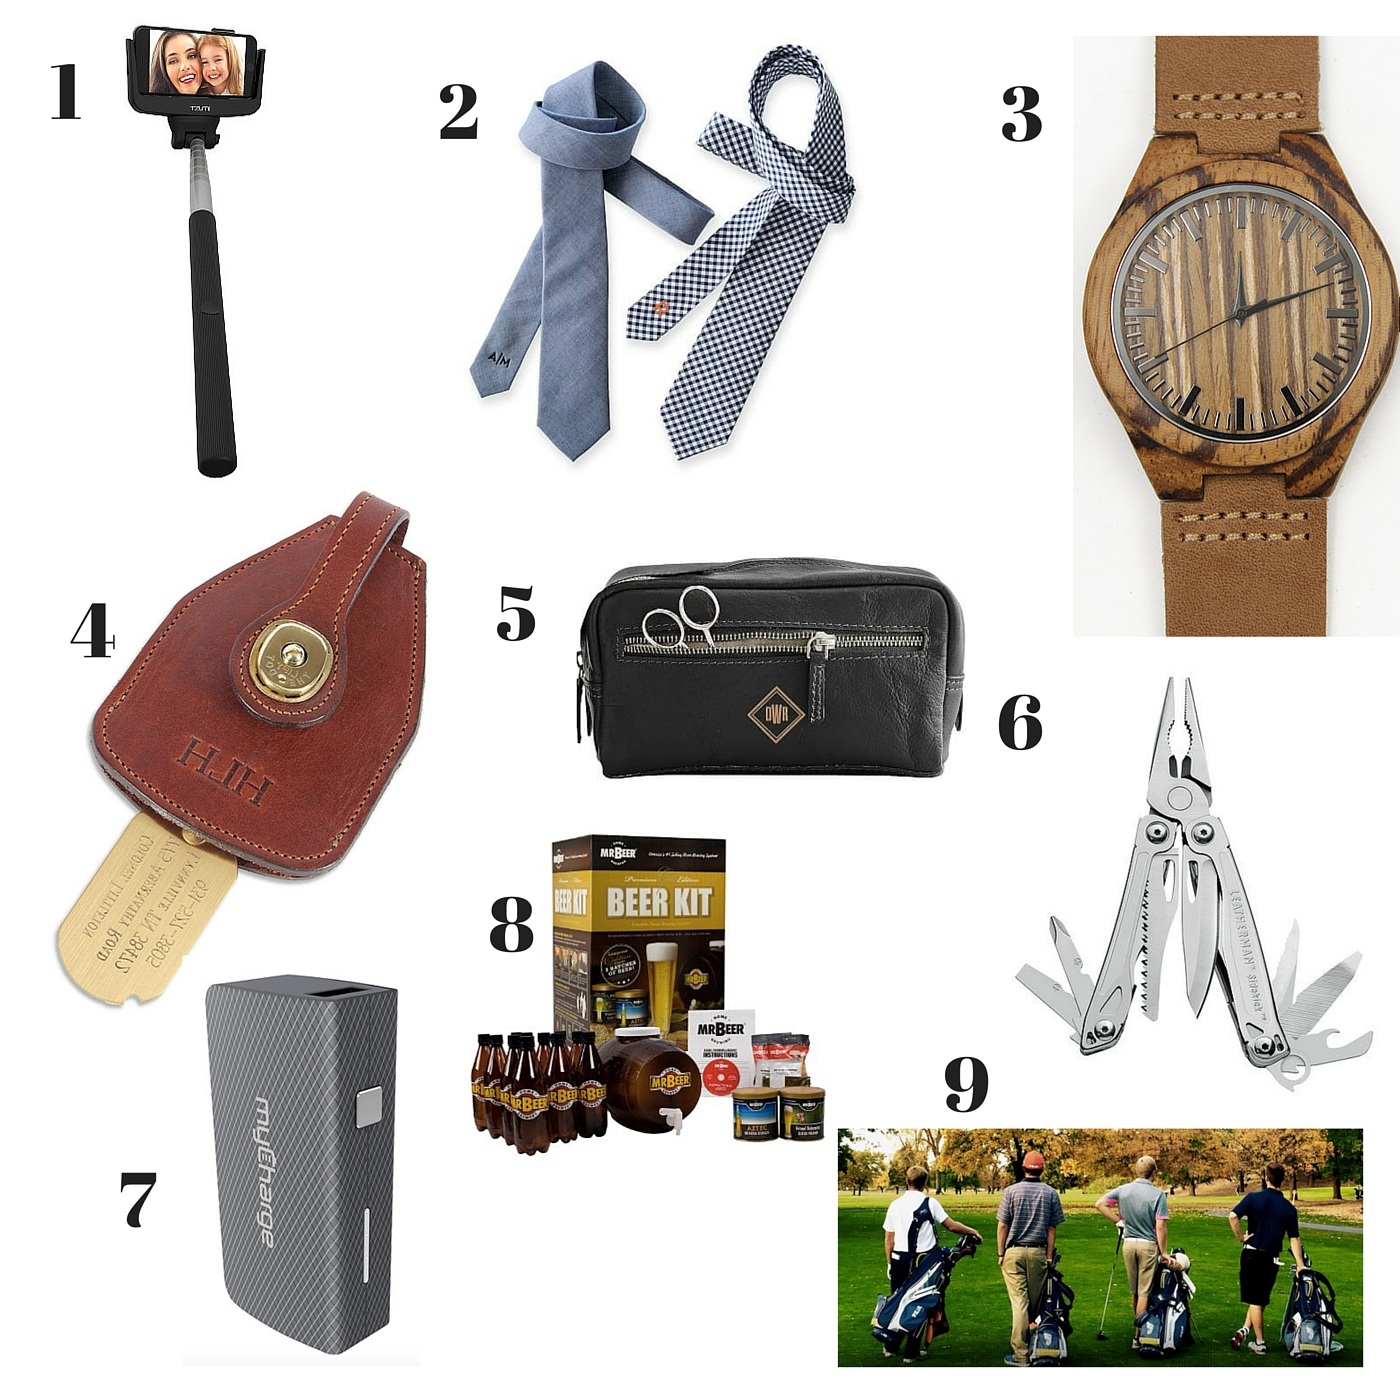 9 Groomsmen Gifts That Wont Break The Bro Code